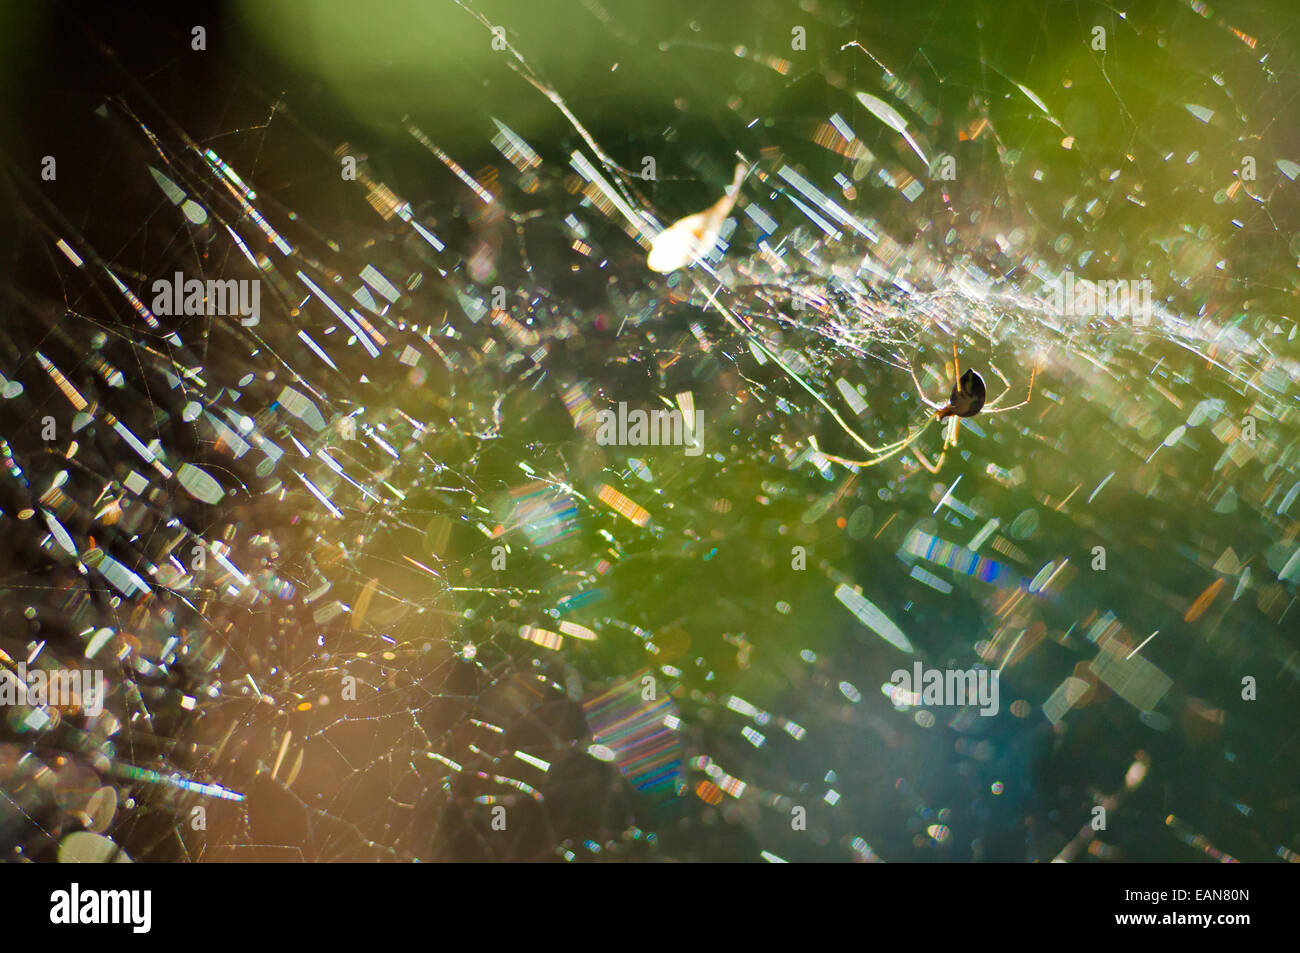 A line weaving spider on its net, lit by the sun creating beautiful effect - Stock Image